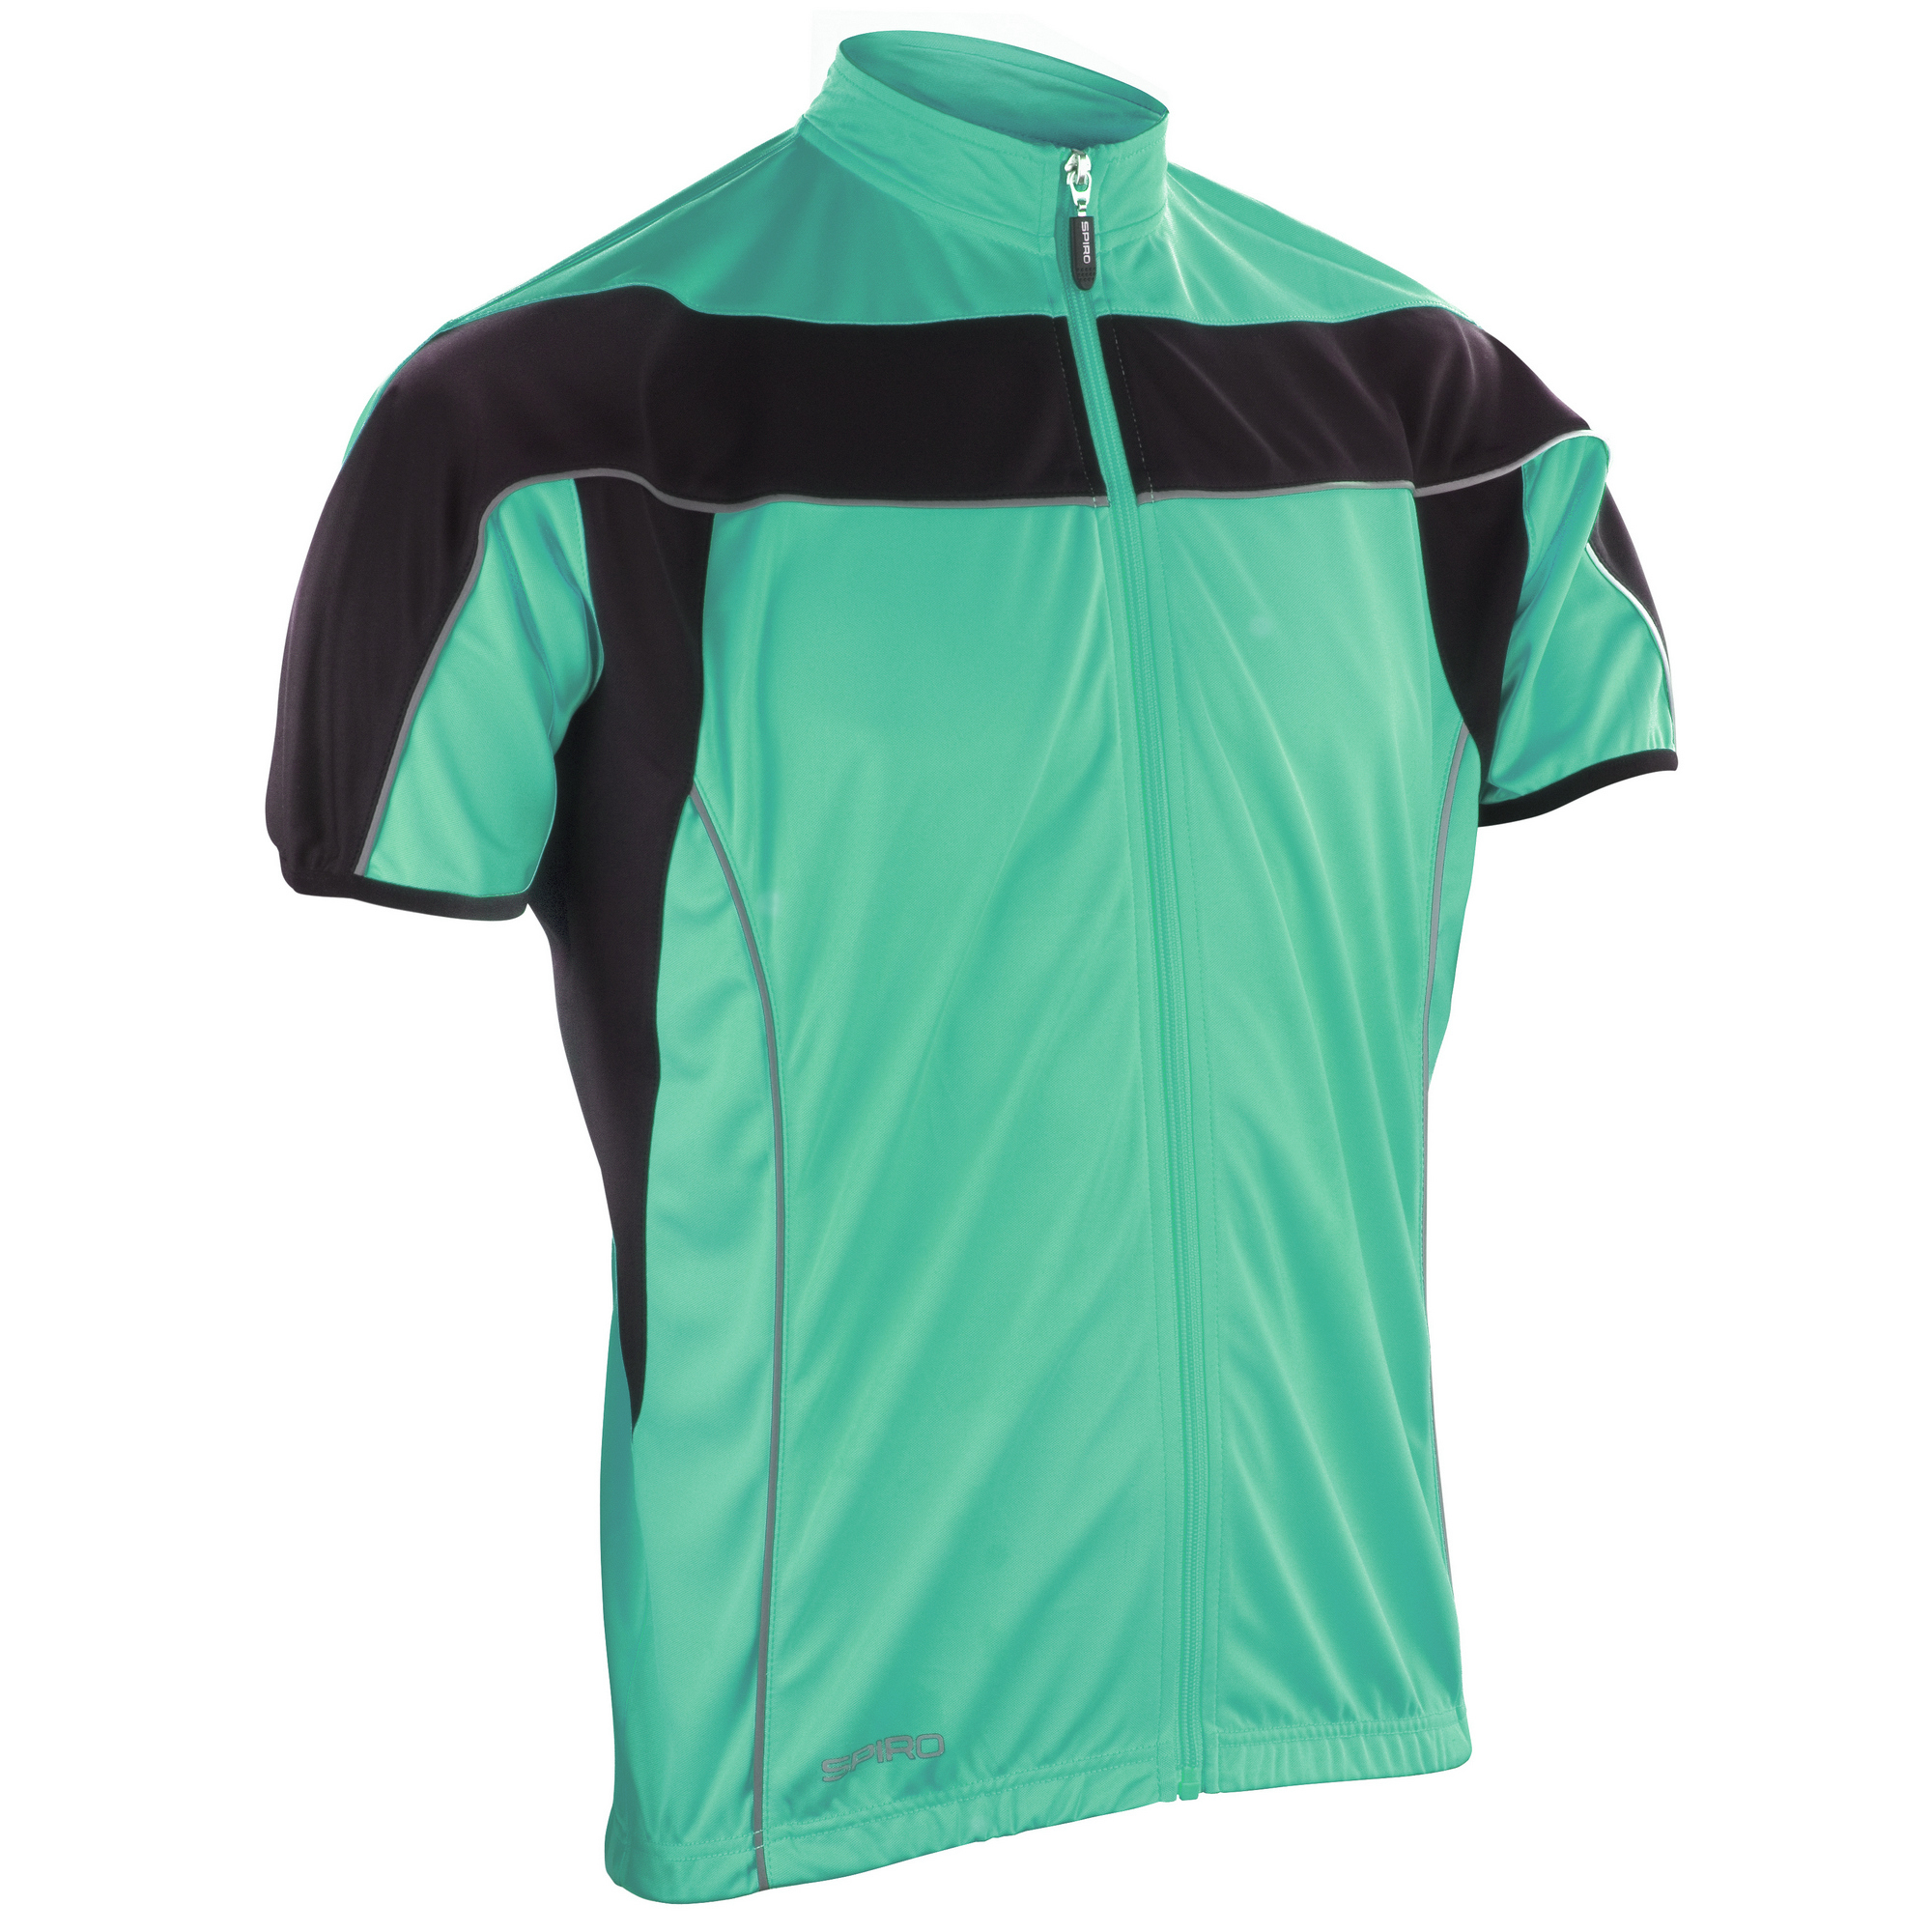 c9480ee6f Spiro Mens Cycling 1 4 Zip Cool-Dry Performance Light Jacket Top (RW1484   Picture 2 of 2